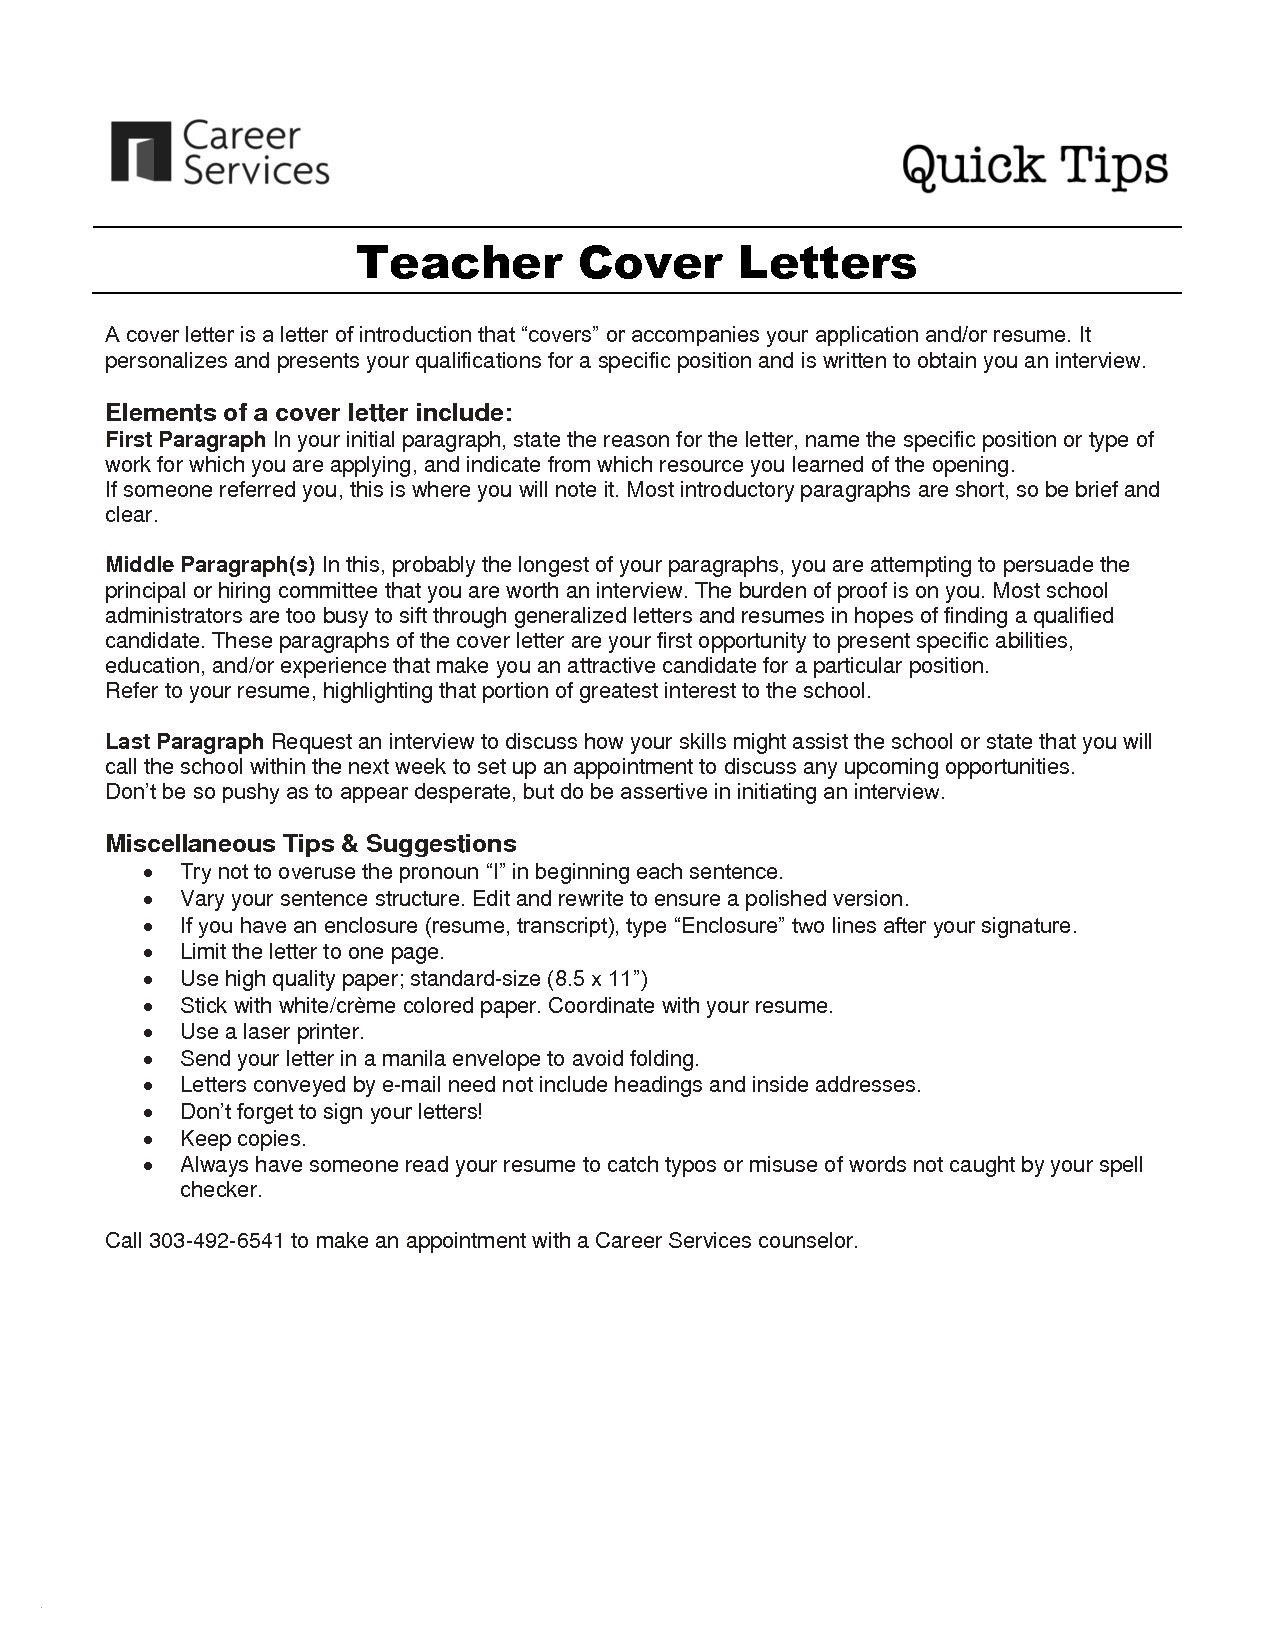 military experience on resume example-Beautiful Resume Tutor Luxury Writing Your Resume Luxury Dishwasher Resume 0d How Long Should Your Resume 9-g